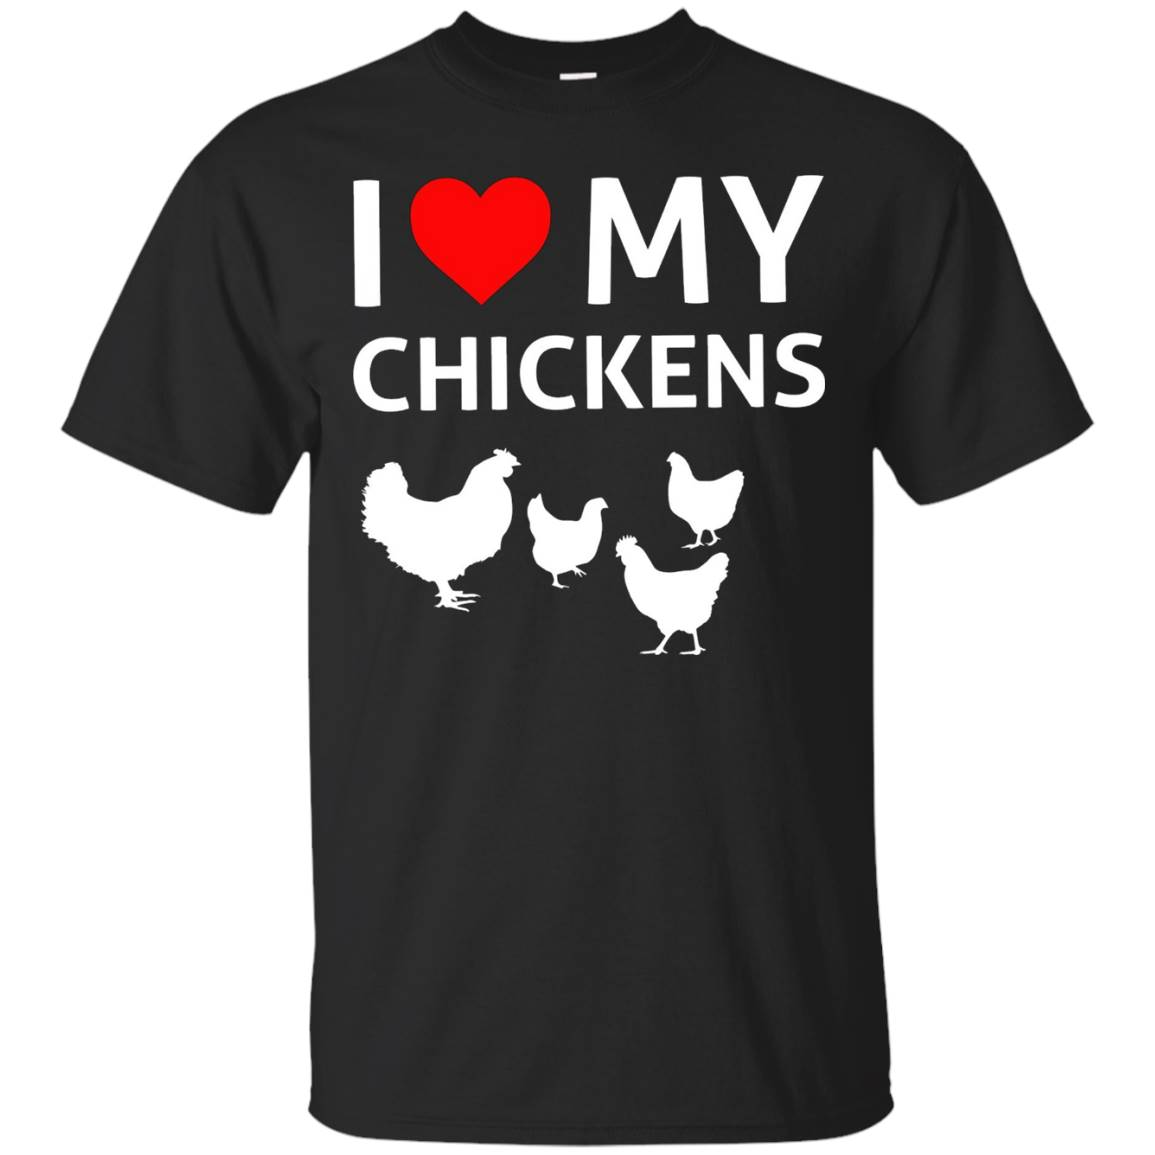 I Love My Chickens T-Shirt – Chicken Shirt